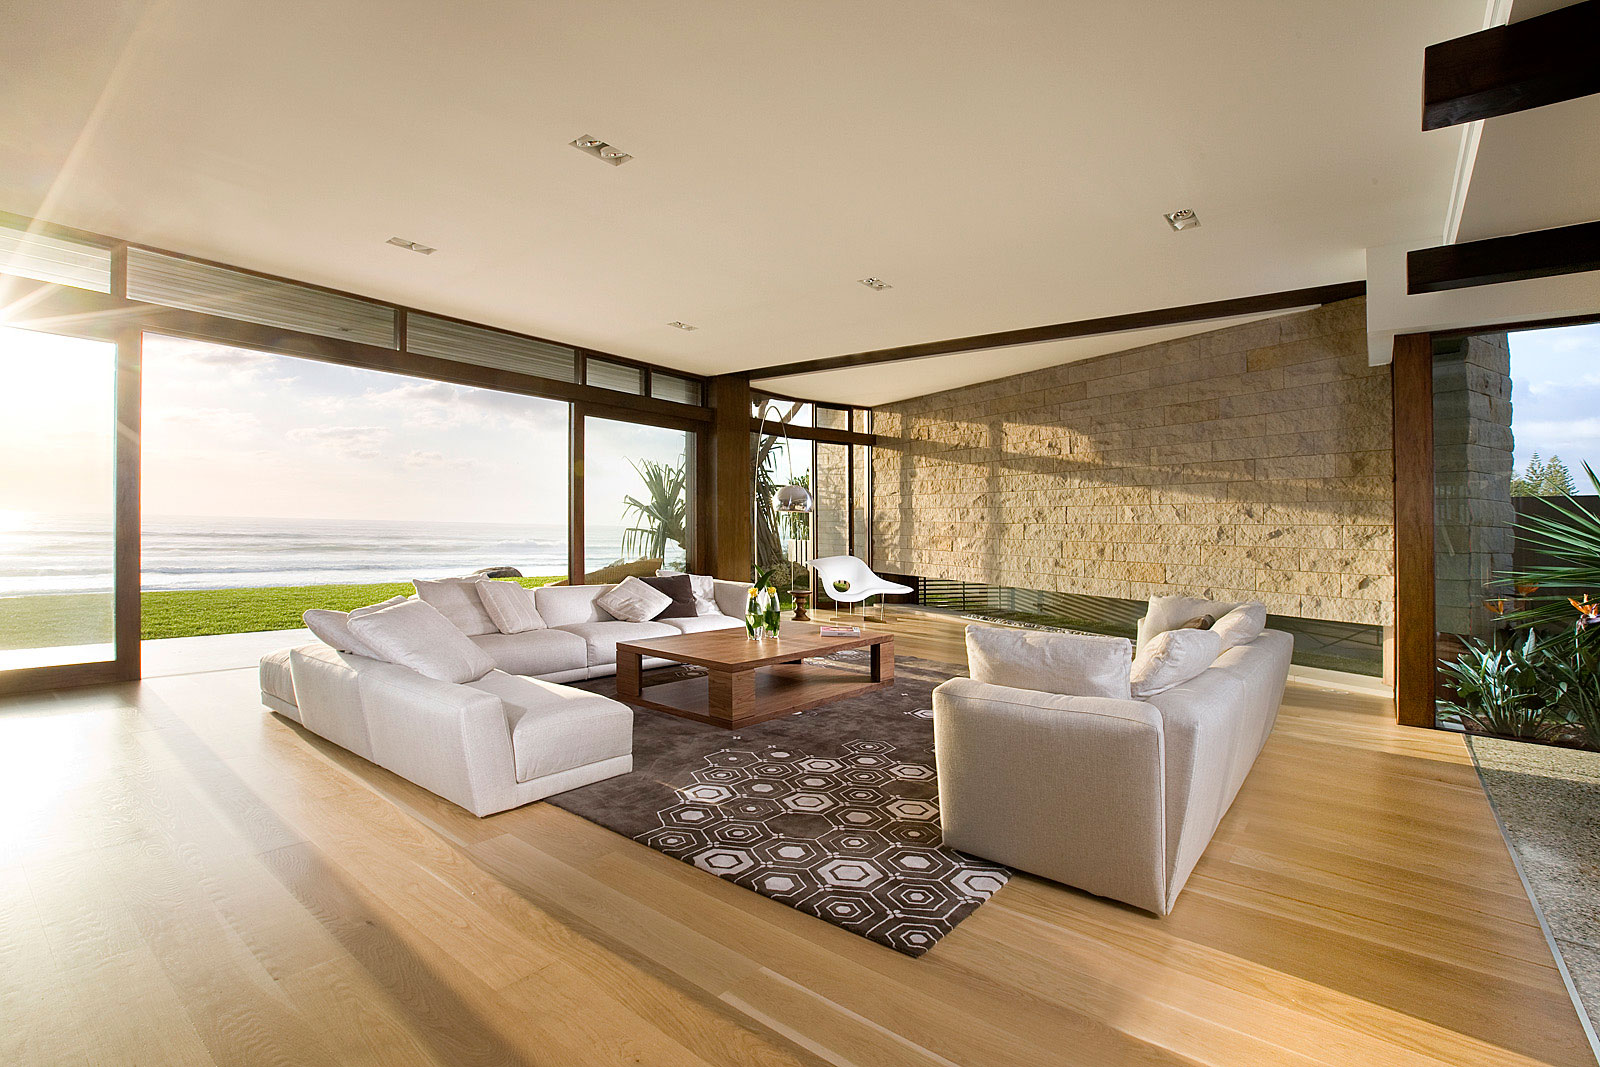 Decorating your living room properly will. 25 Open Living Room Design Ideas